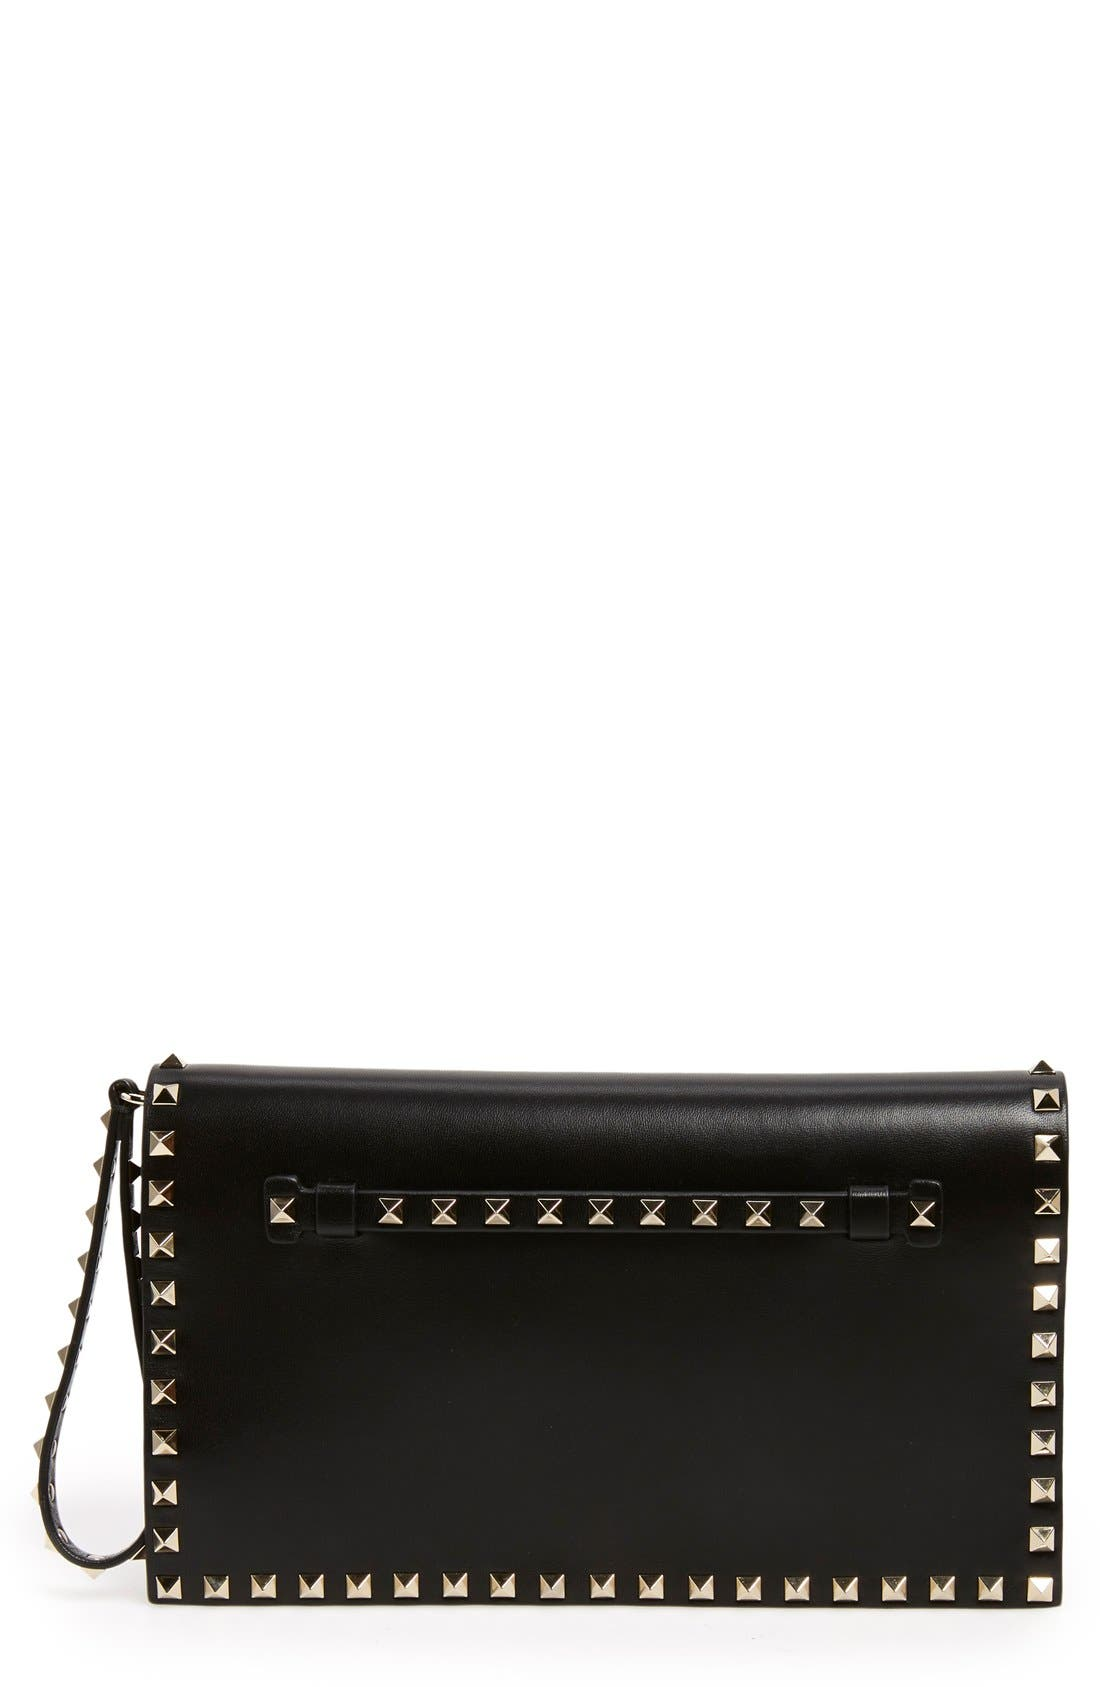 VALENTINO GARAVANI Rockstud Leather Flap Clutch